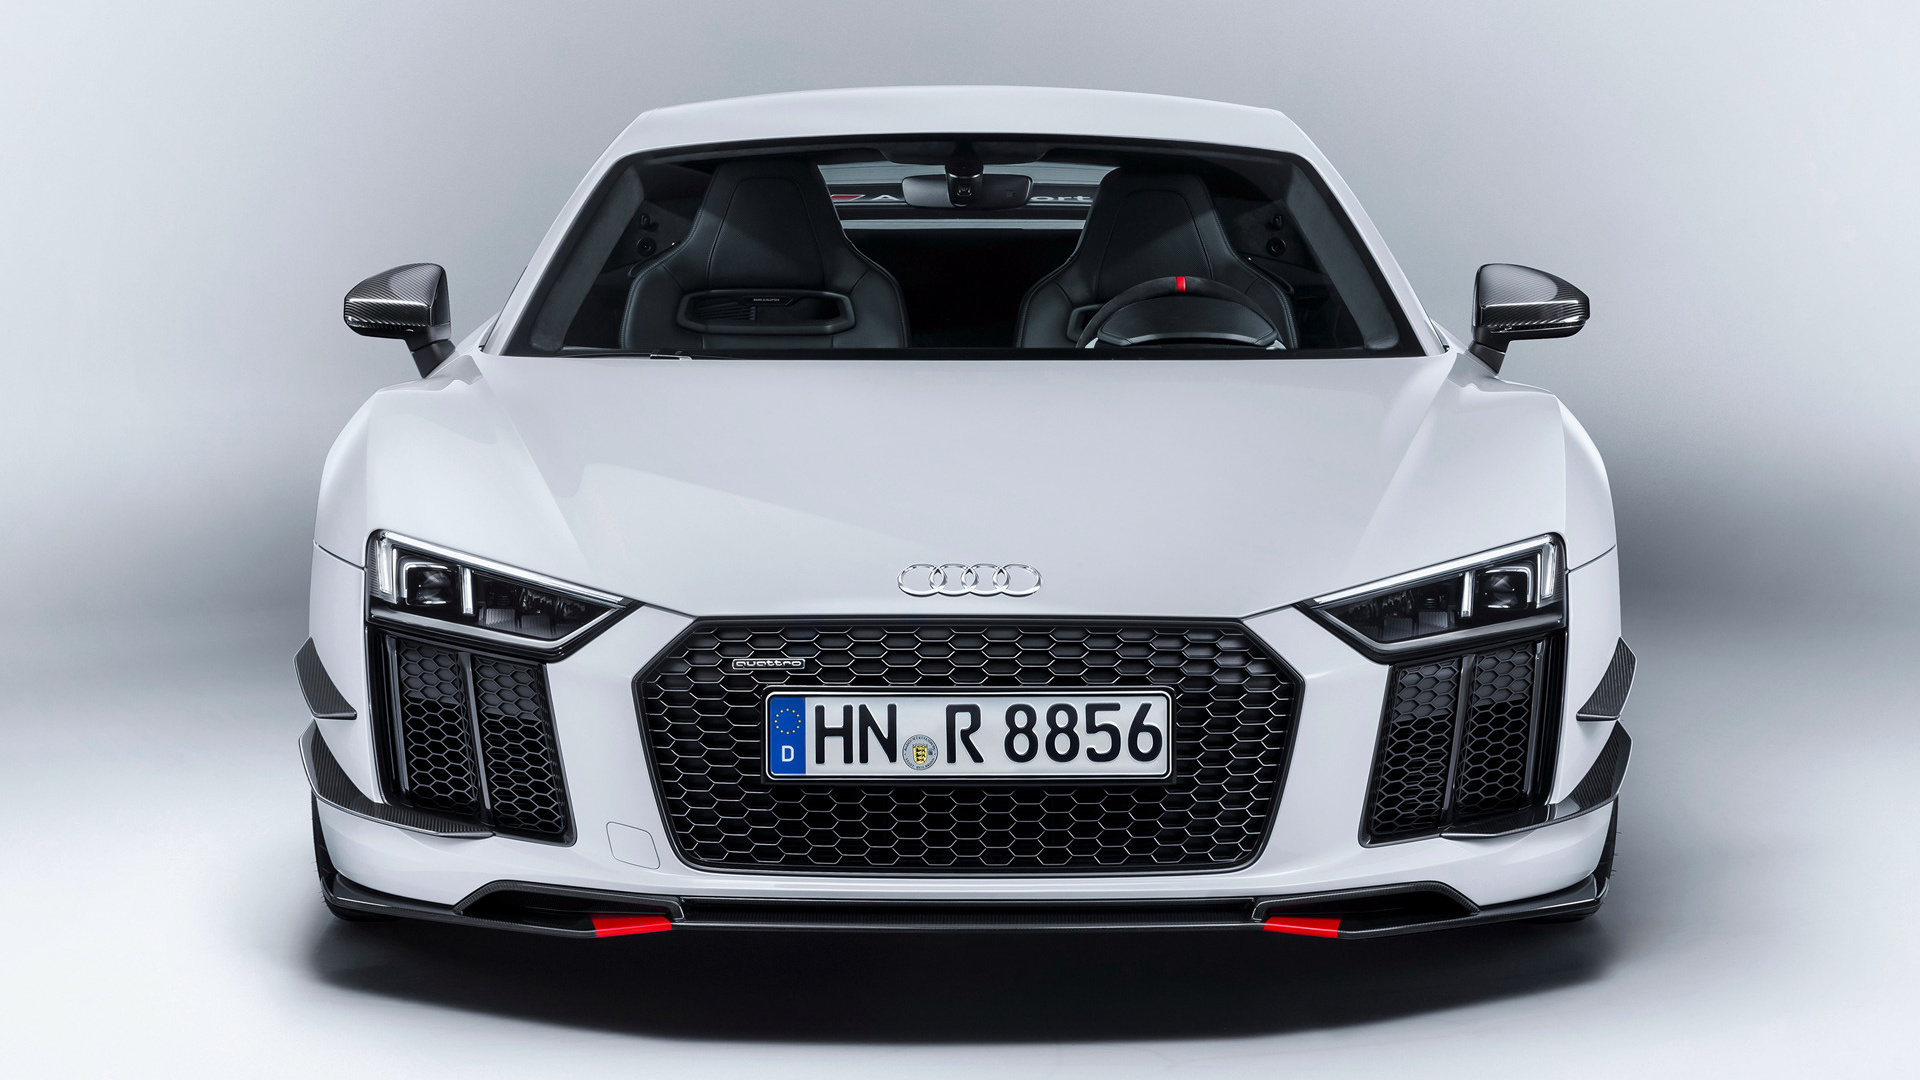 Audi R8 Car Coupe Luxury Car Sport Car White Car Wallpaper Resolution 1920x1080 Id 1079165 Wallha Com